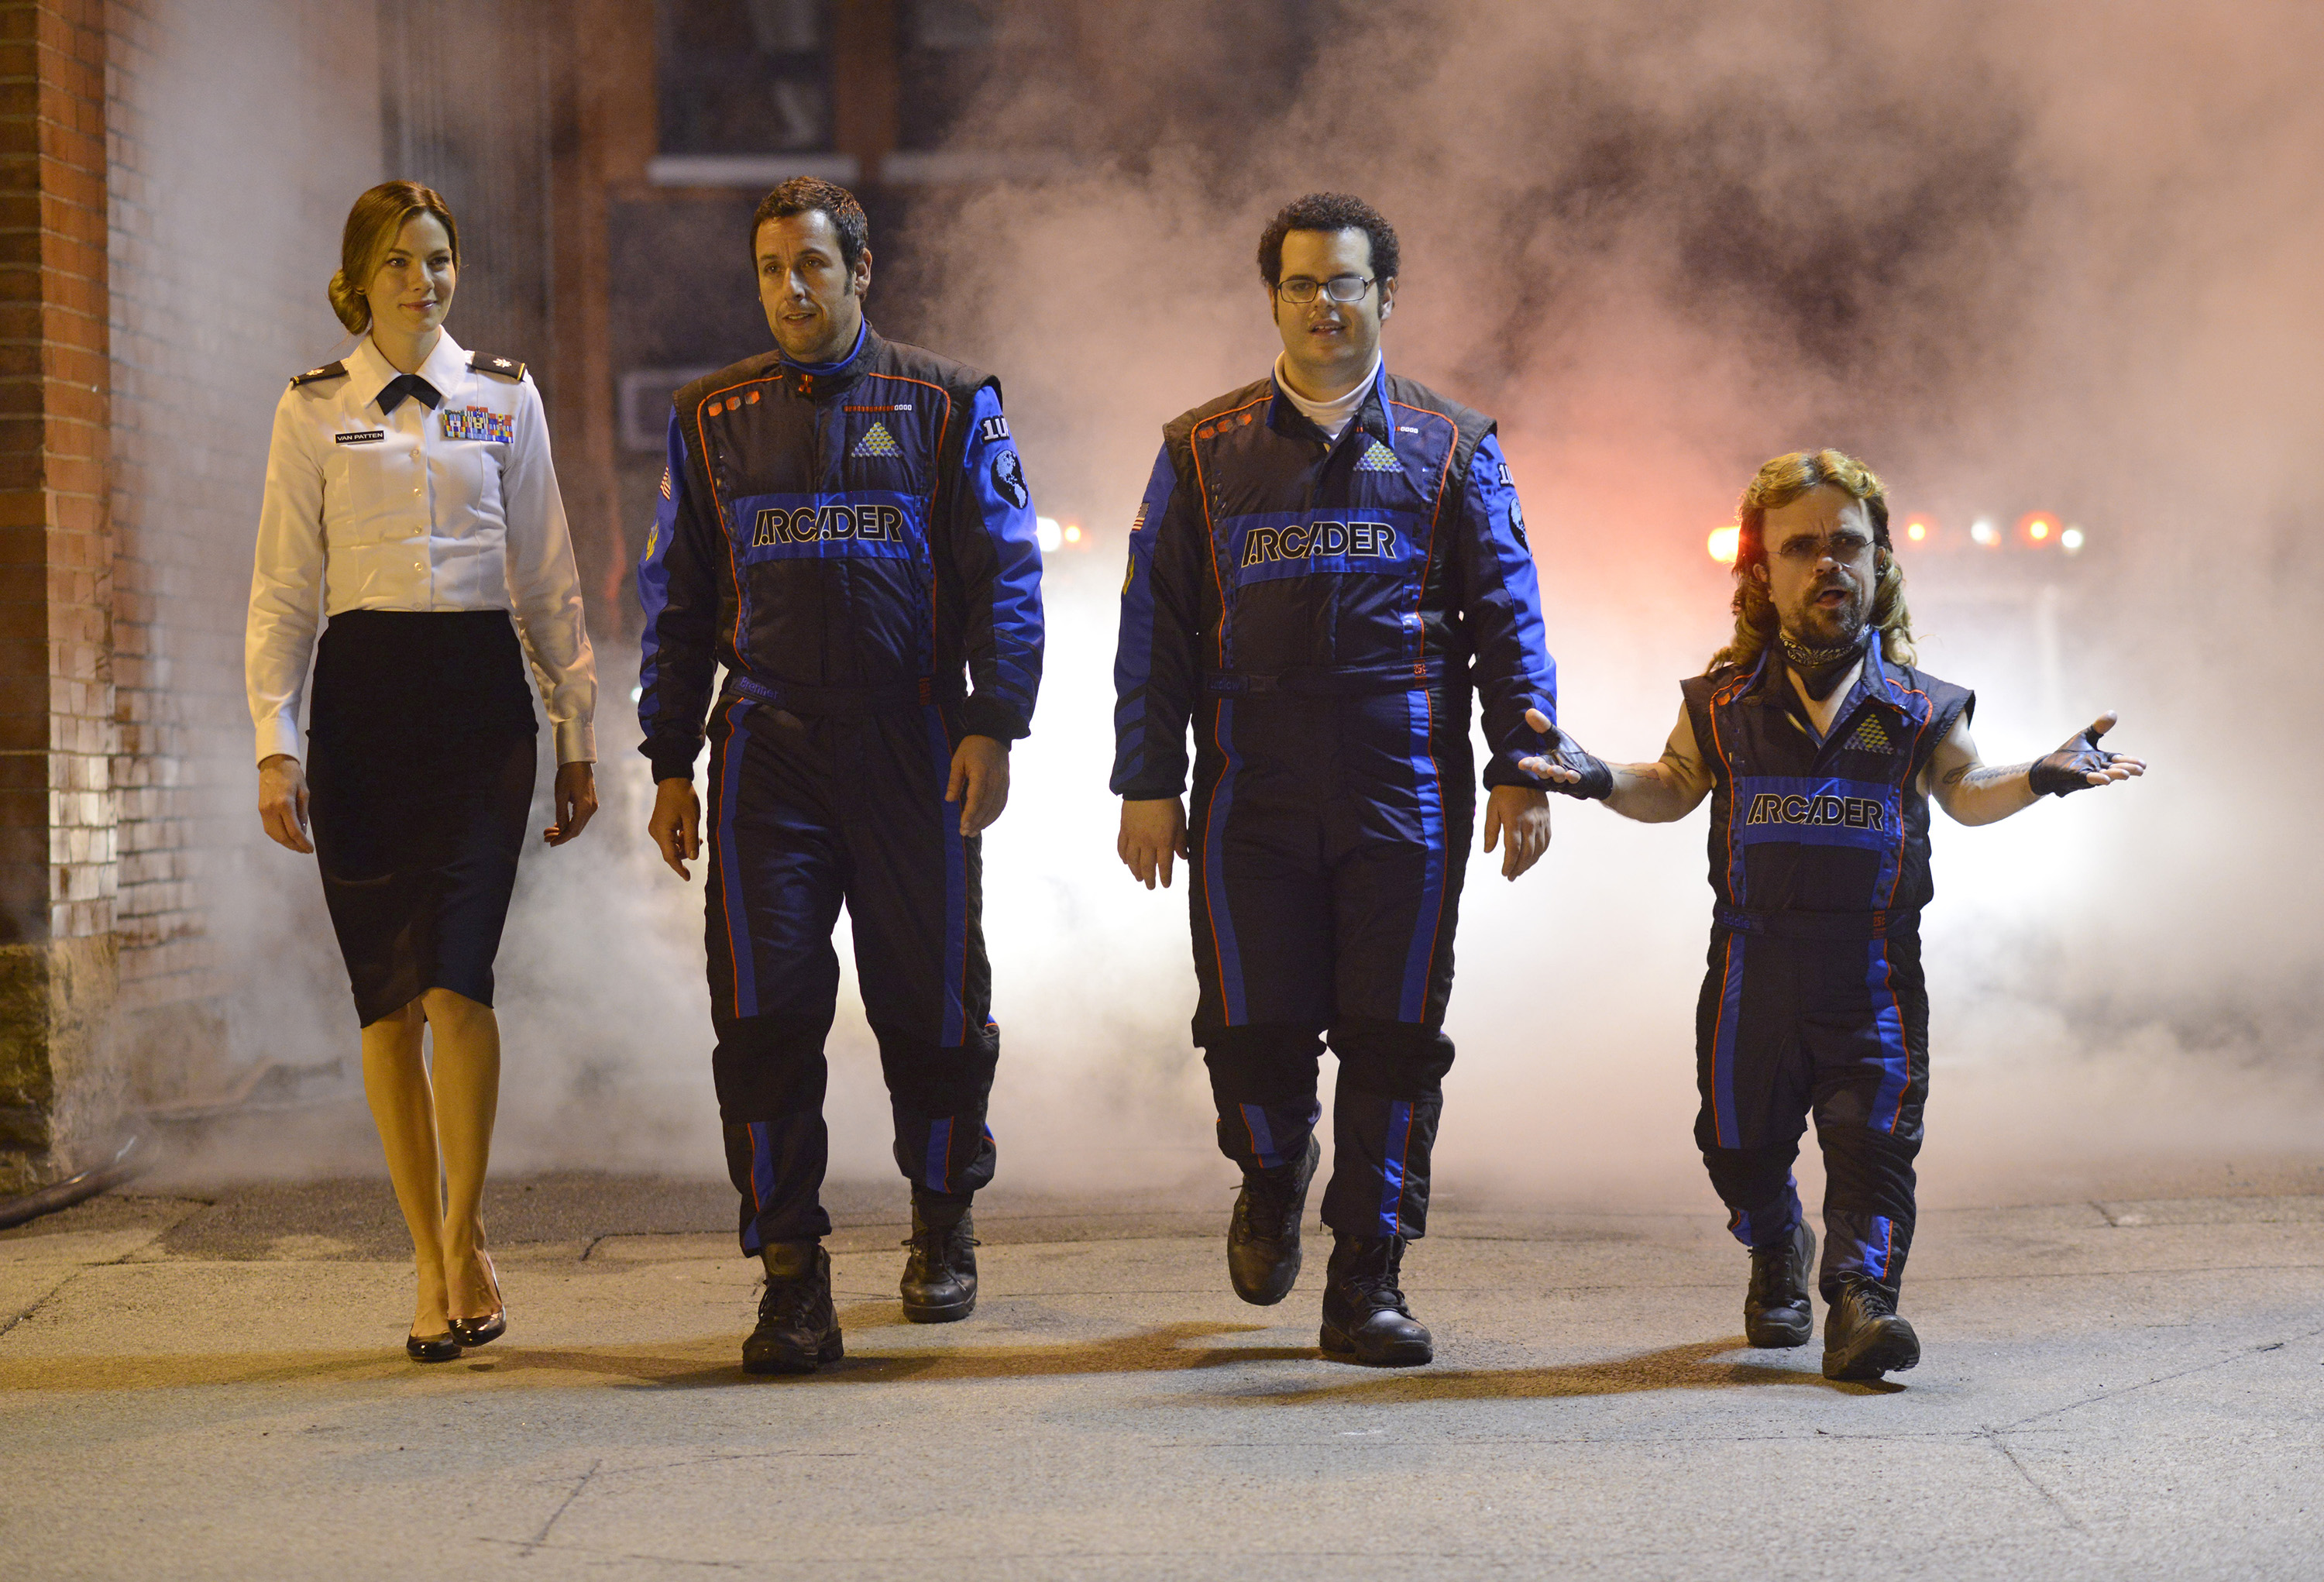 Hey what do Pixels and the Sansa Stark have in common?  Despite his best efforts, Peter Dinklage could not save either.